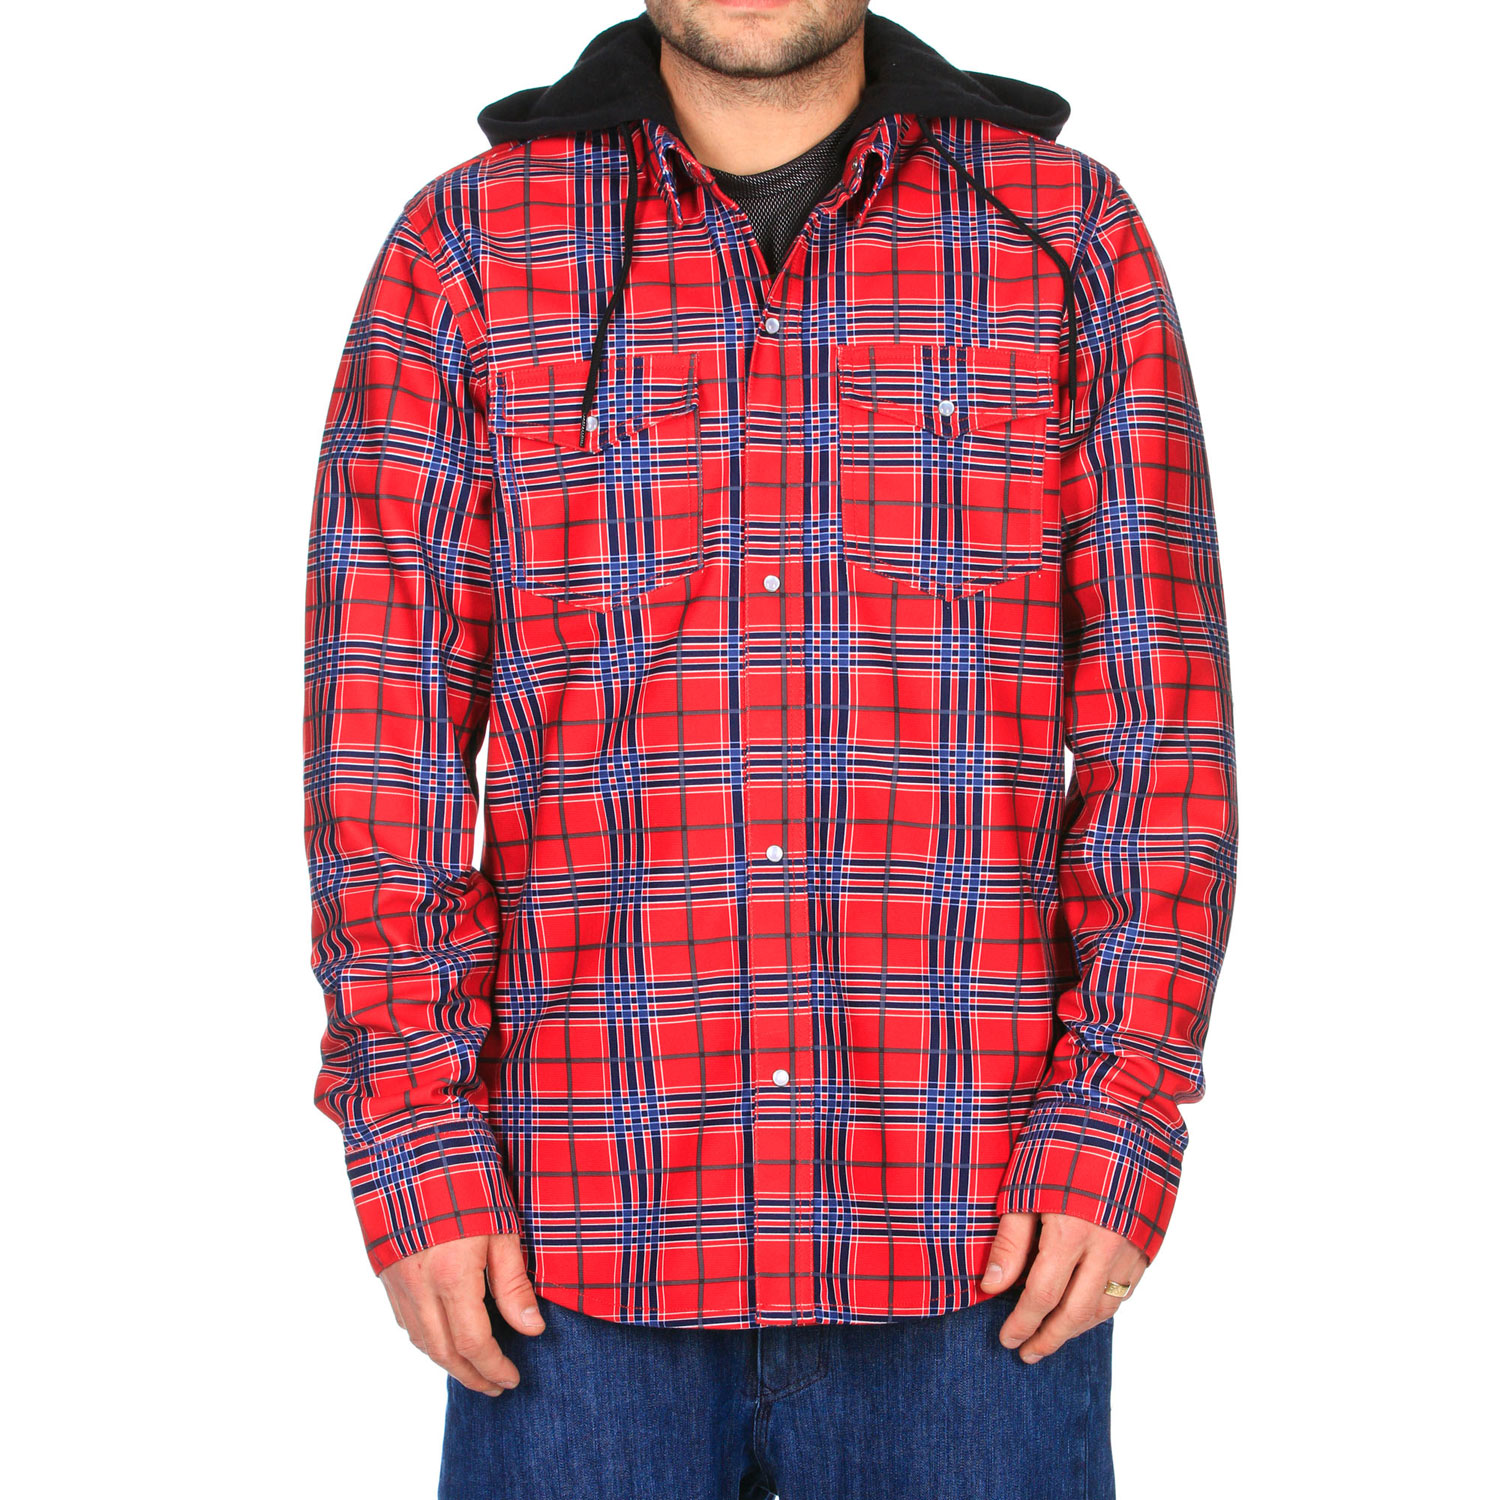 Surf The Volcom Redding Flannel Hoodie is a soft, warm covering great for early spring and late autumn. The drawcord hood is great for pulling tight to keep the wind out and since it is made with jersey cotton it does a great job of that while still being soft. With a bit of water resistance, this hoodie keeps you dry in light rain or misting weather. The Redding Flannel Hoodie is a great choice for going for a hike or working outside on a cool day. Not only that it looks good, so be sure to pick one up for yourself today.Key Features of the Volcom Redding Flannel Hoodie:  Bonded Flannel With Poly Mesh Backing  Cotton Jersey Hood  Drawcord Hood Cinch   Stone Woven Label   Standard Fit - $65.95